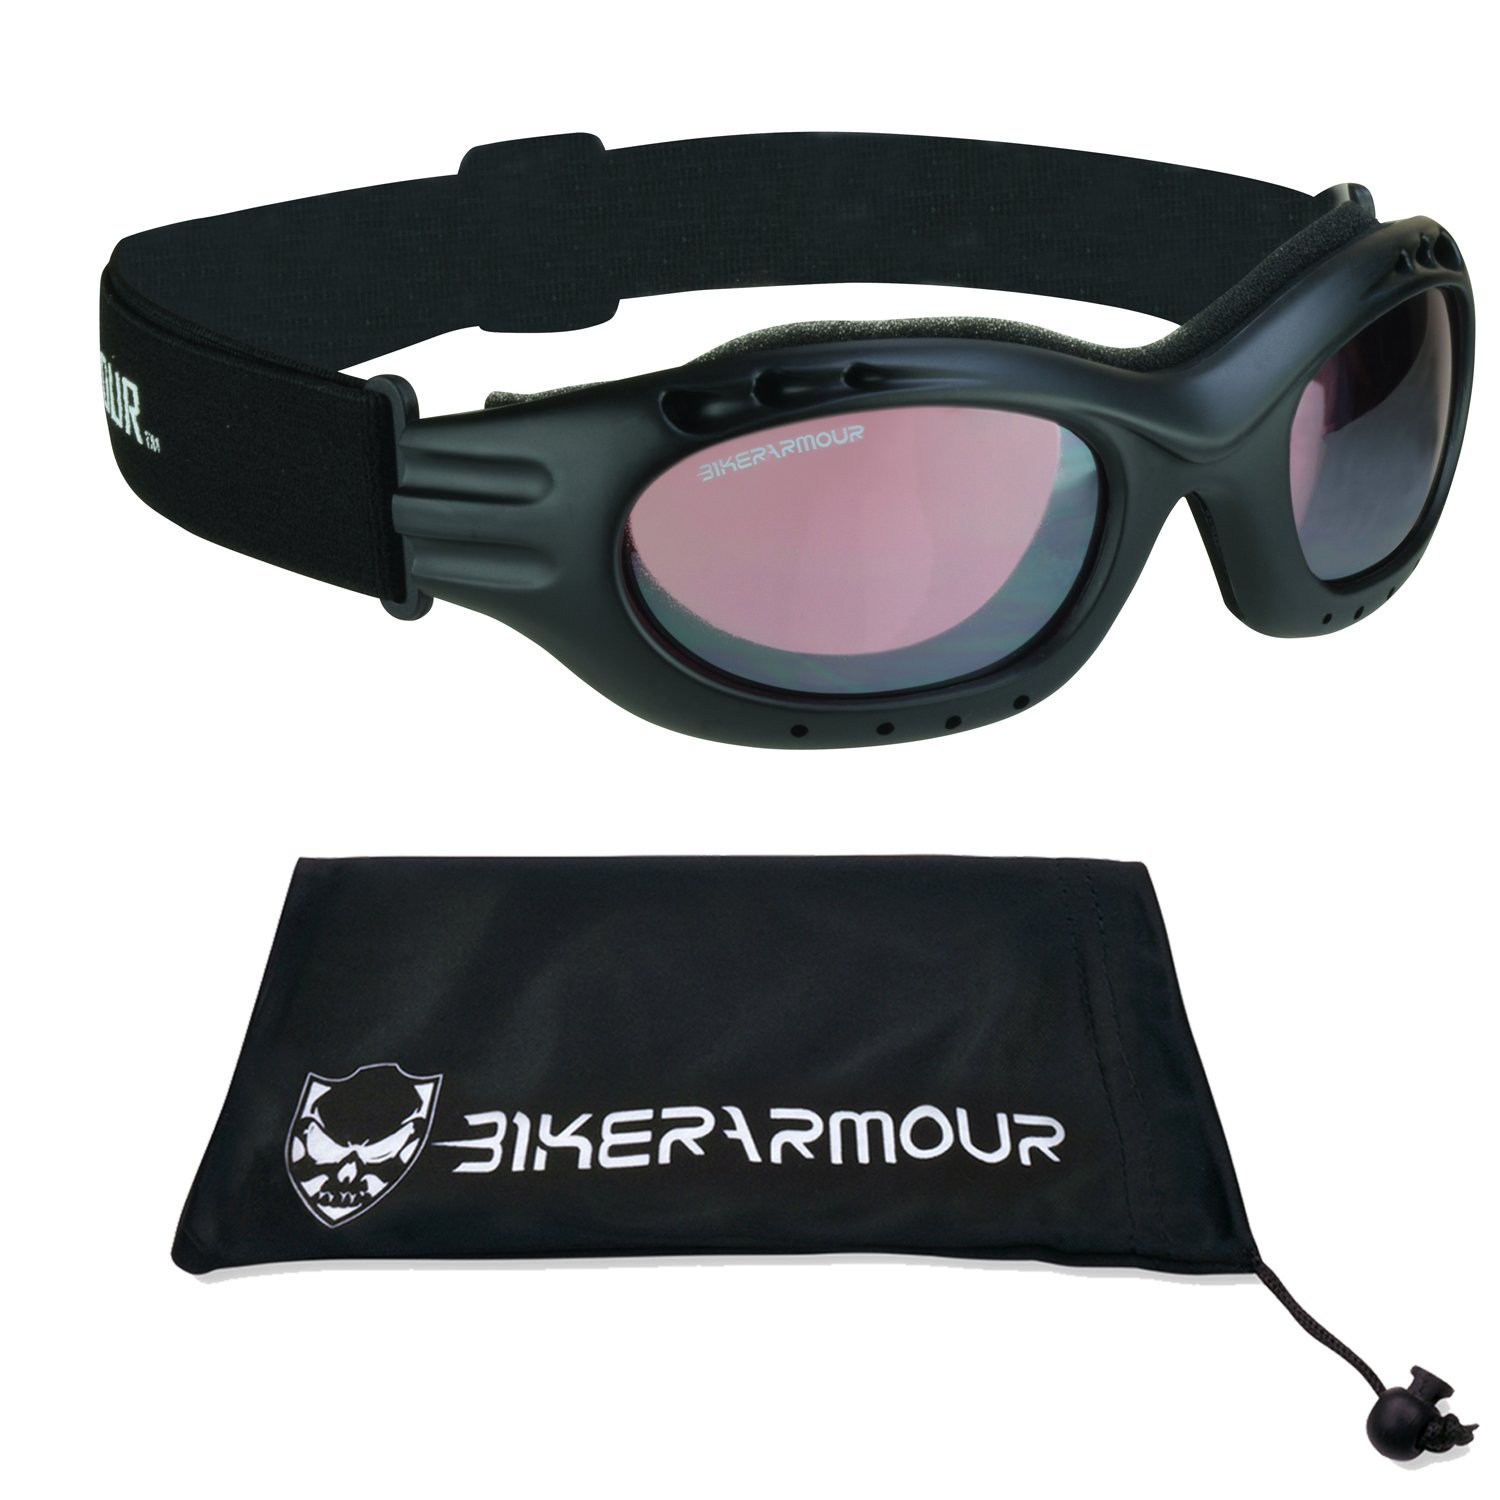 Motorcycle Riding Goggles Rose Tinted Fog Resisitant